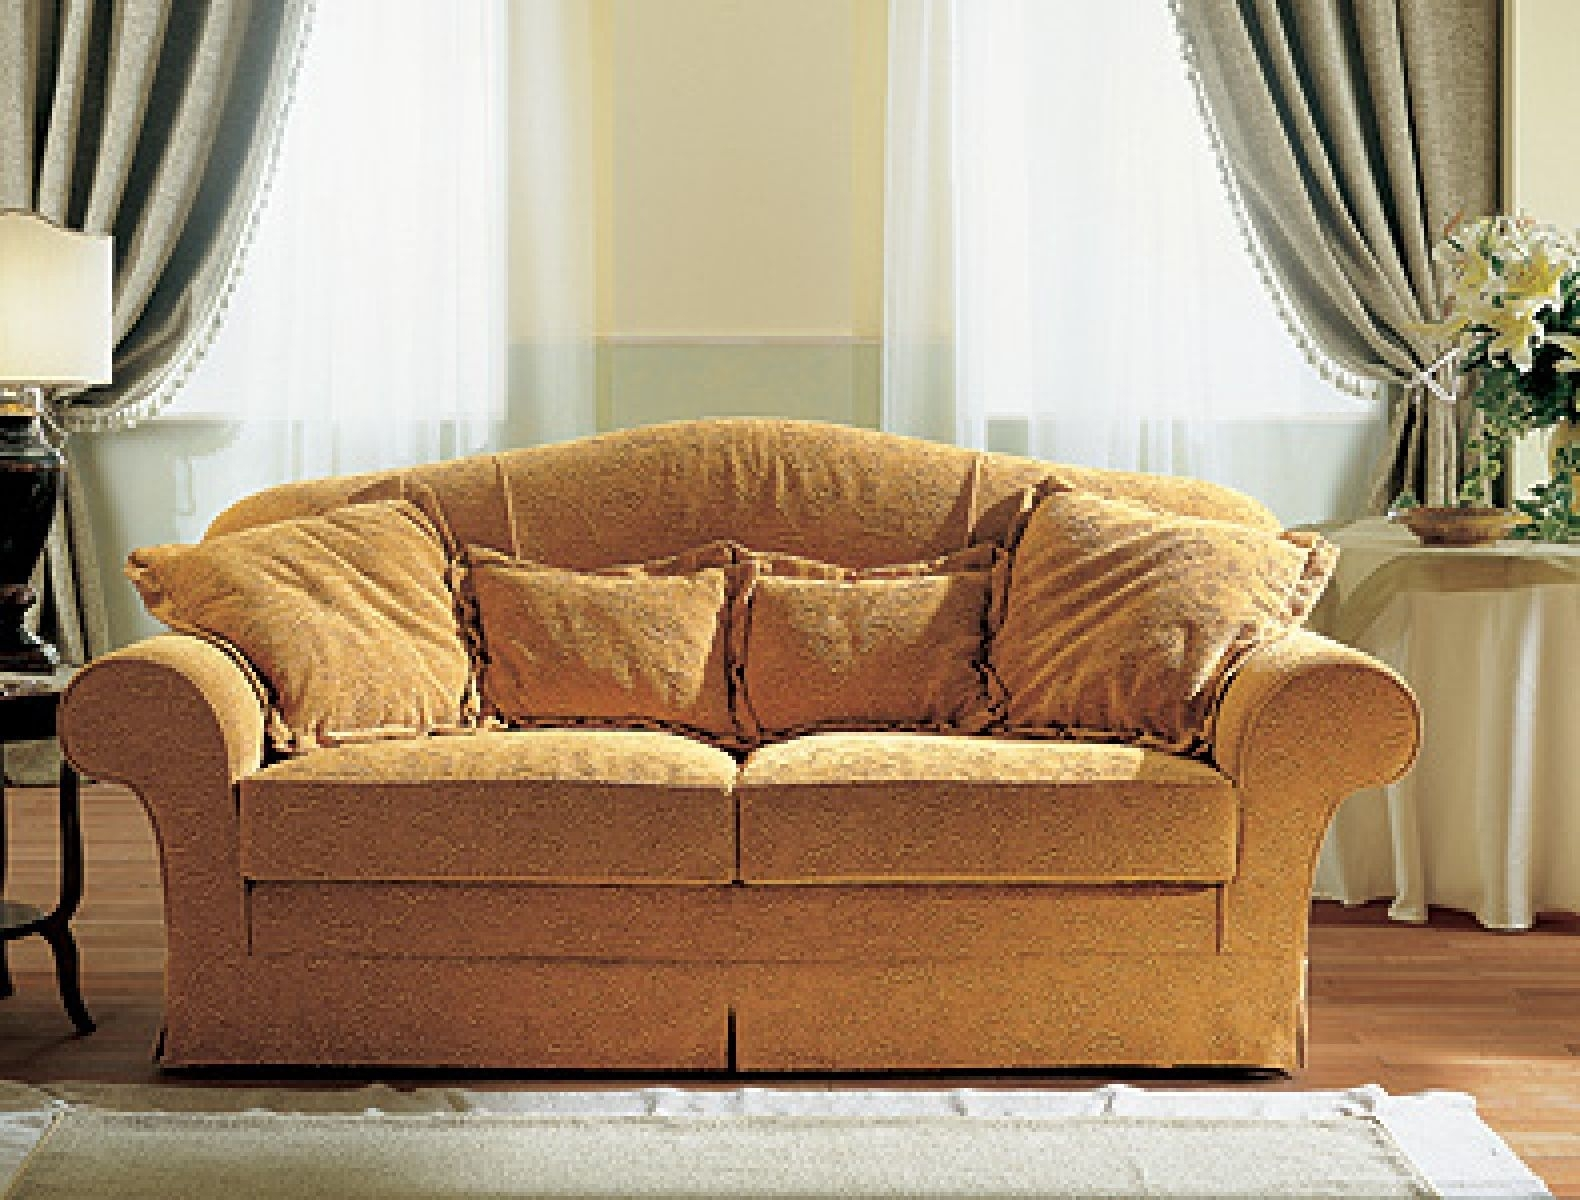 Traditional Sofa Fabric 2 Seater White Jois Doimo Salotti With Regard To Traditional Fabric Sofas (Image 14 of 15)